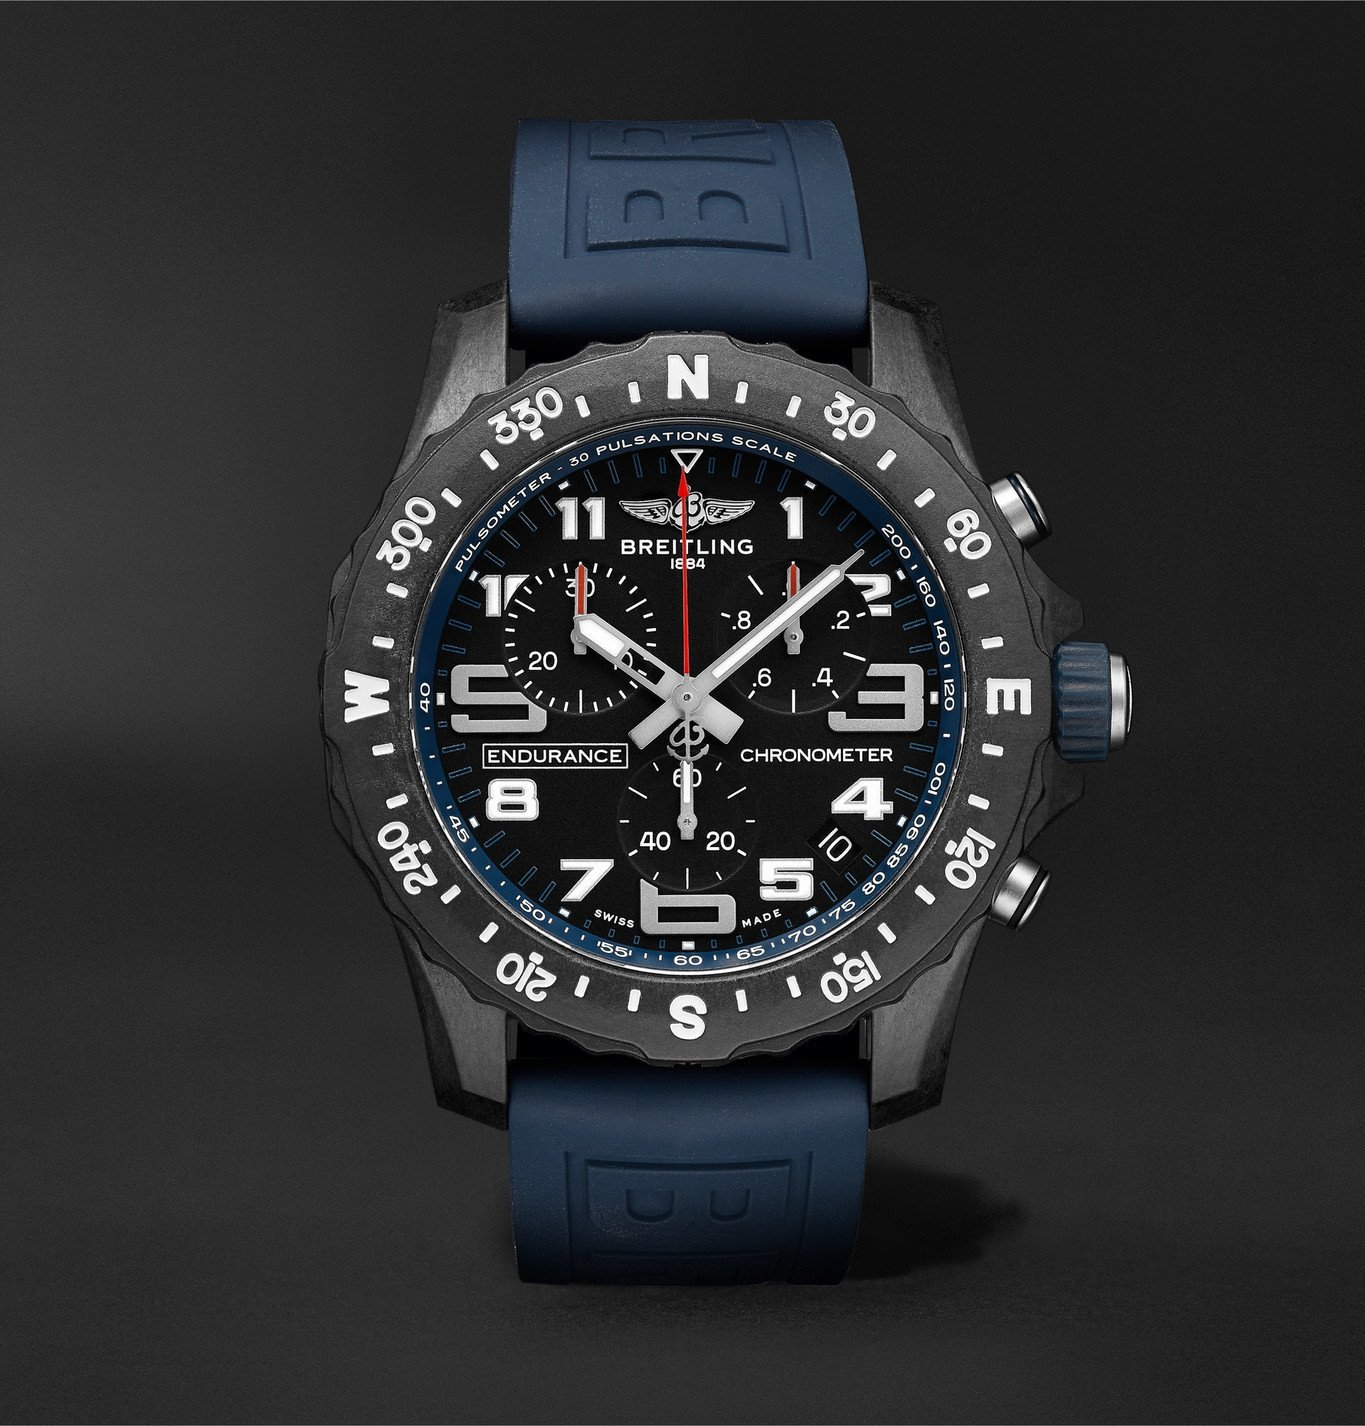 Photo: Breitling - Endurance Pro SuperQuartz Chronograph 44mm Breitlight and Rubber Watch, Ref. No. X82310D51B1S1 - Black